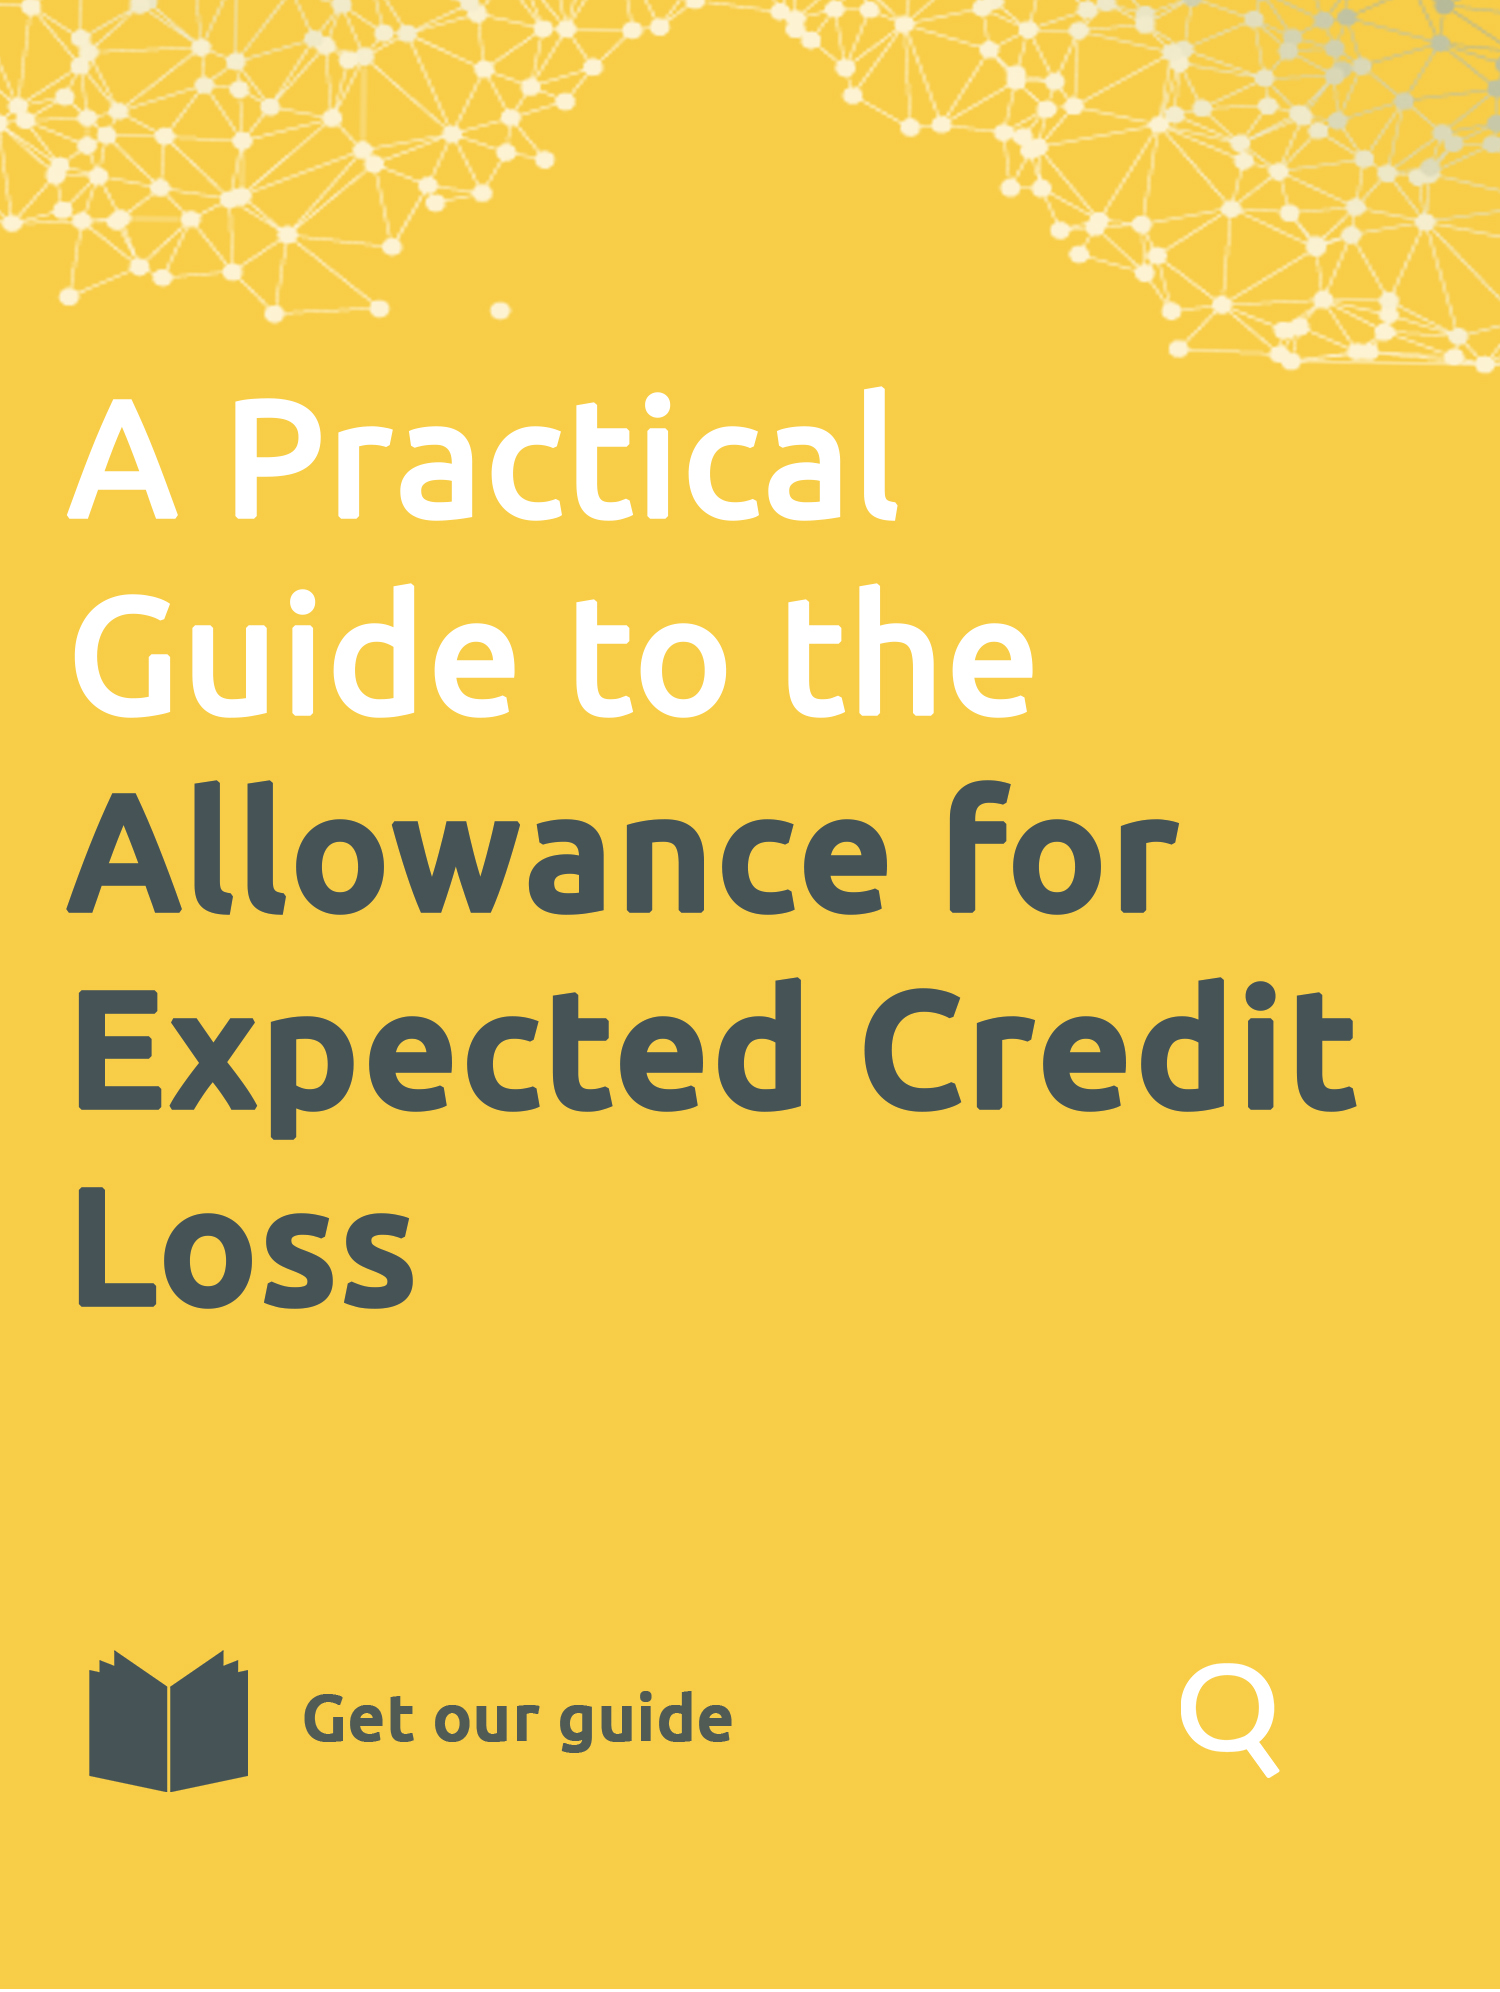 A Practical Guide to the Allowance for Expected Credit Loss